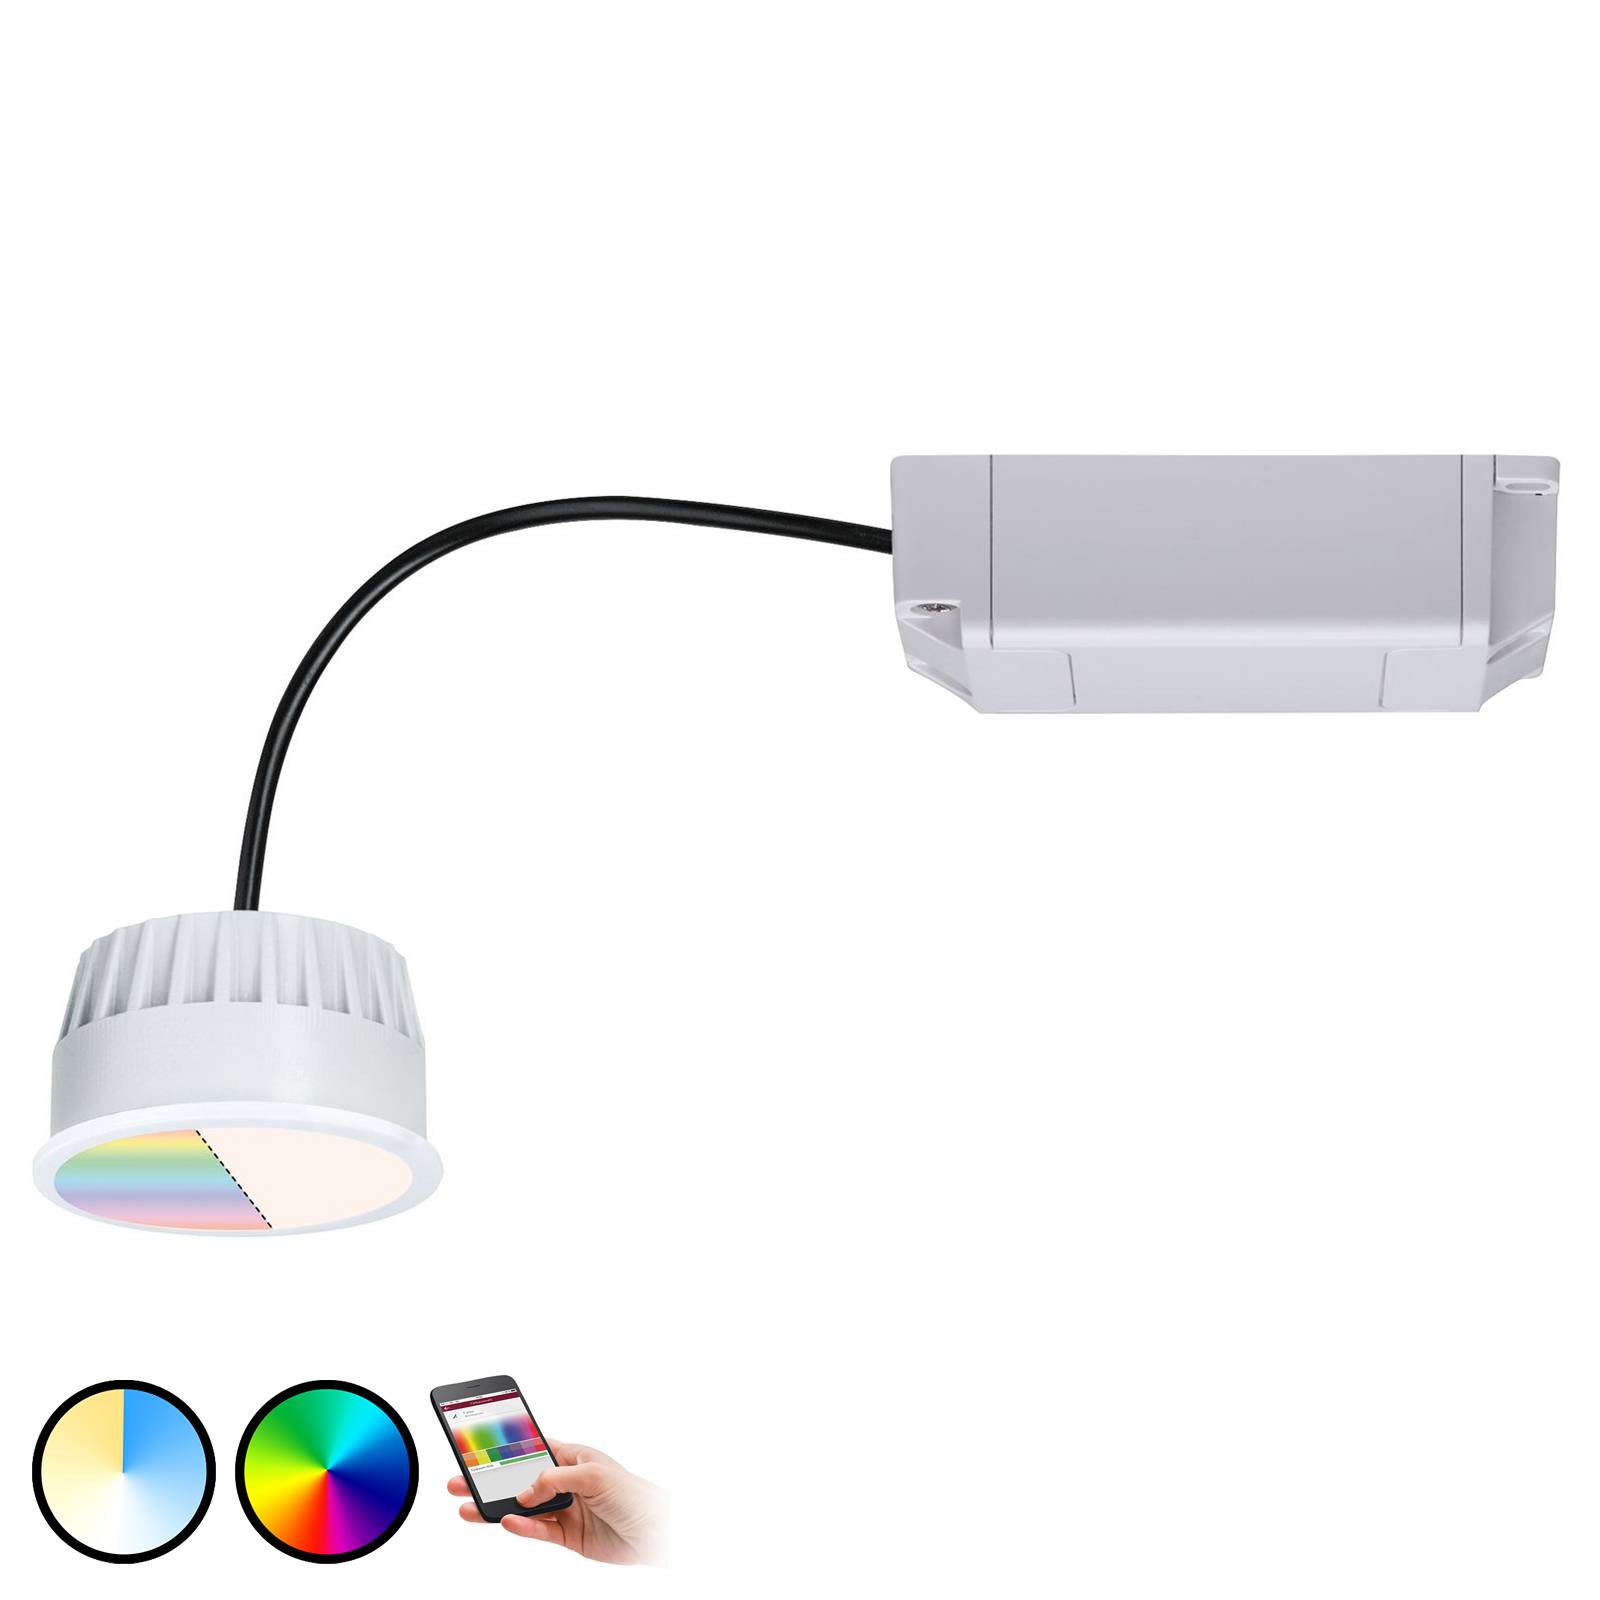 Paulmann Smart Friends ZigBee LED-Modul Coin, RGBW